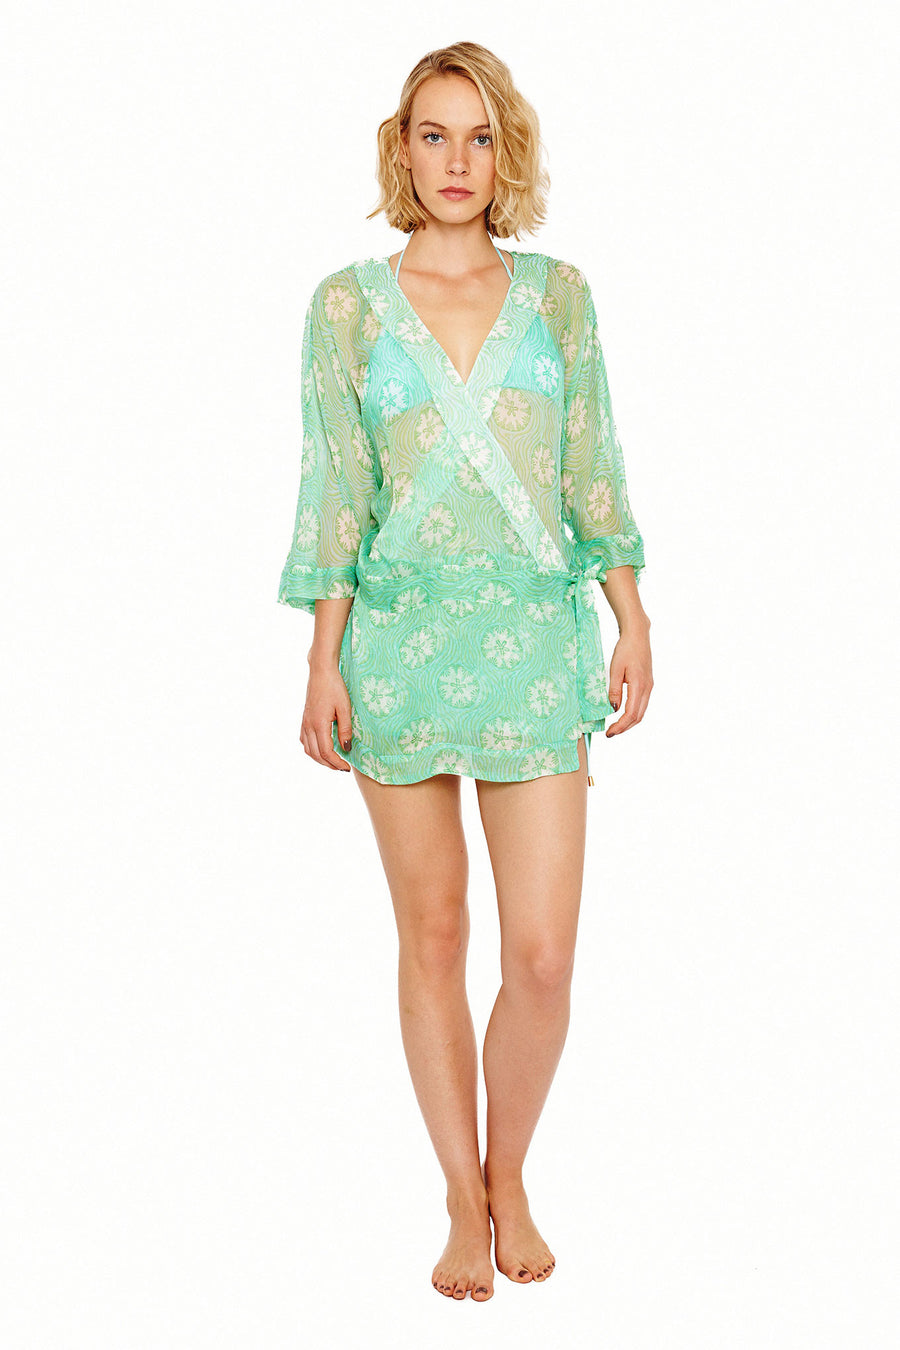 Lotty B Kimono in Silk Chiffon (Sand Dollar Repeat Green)